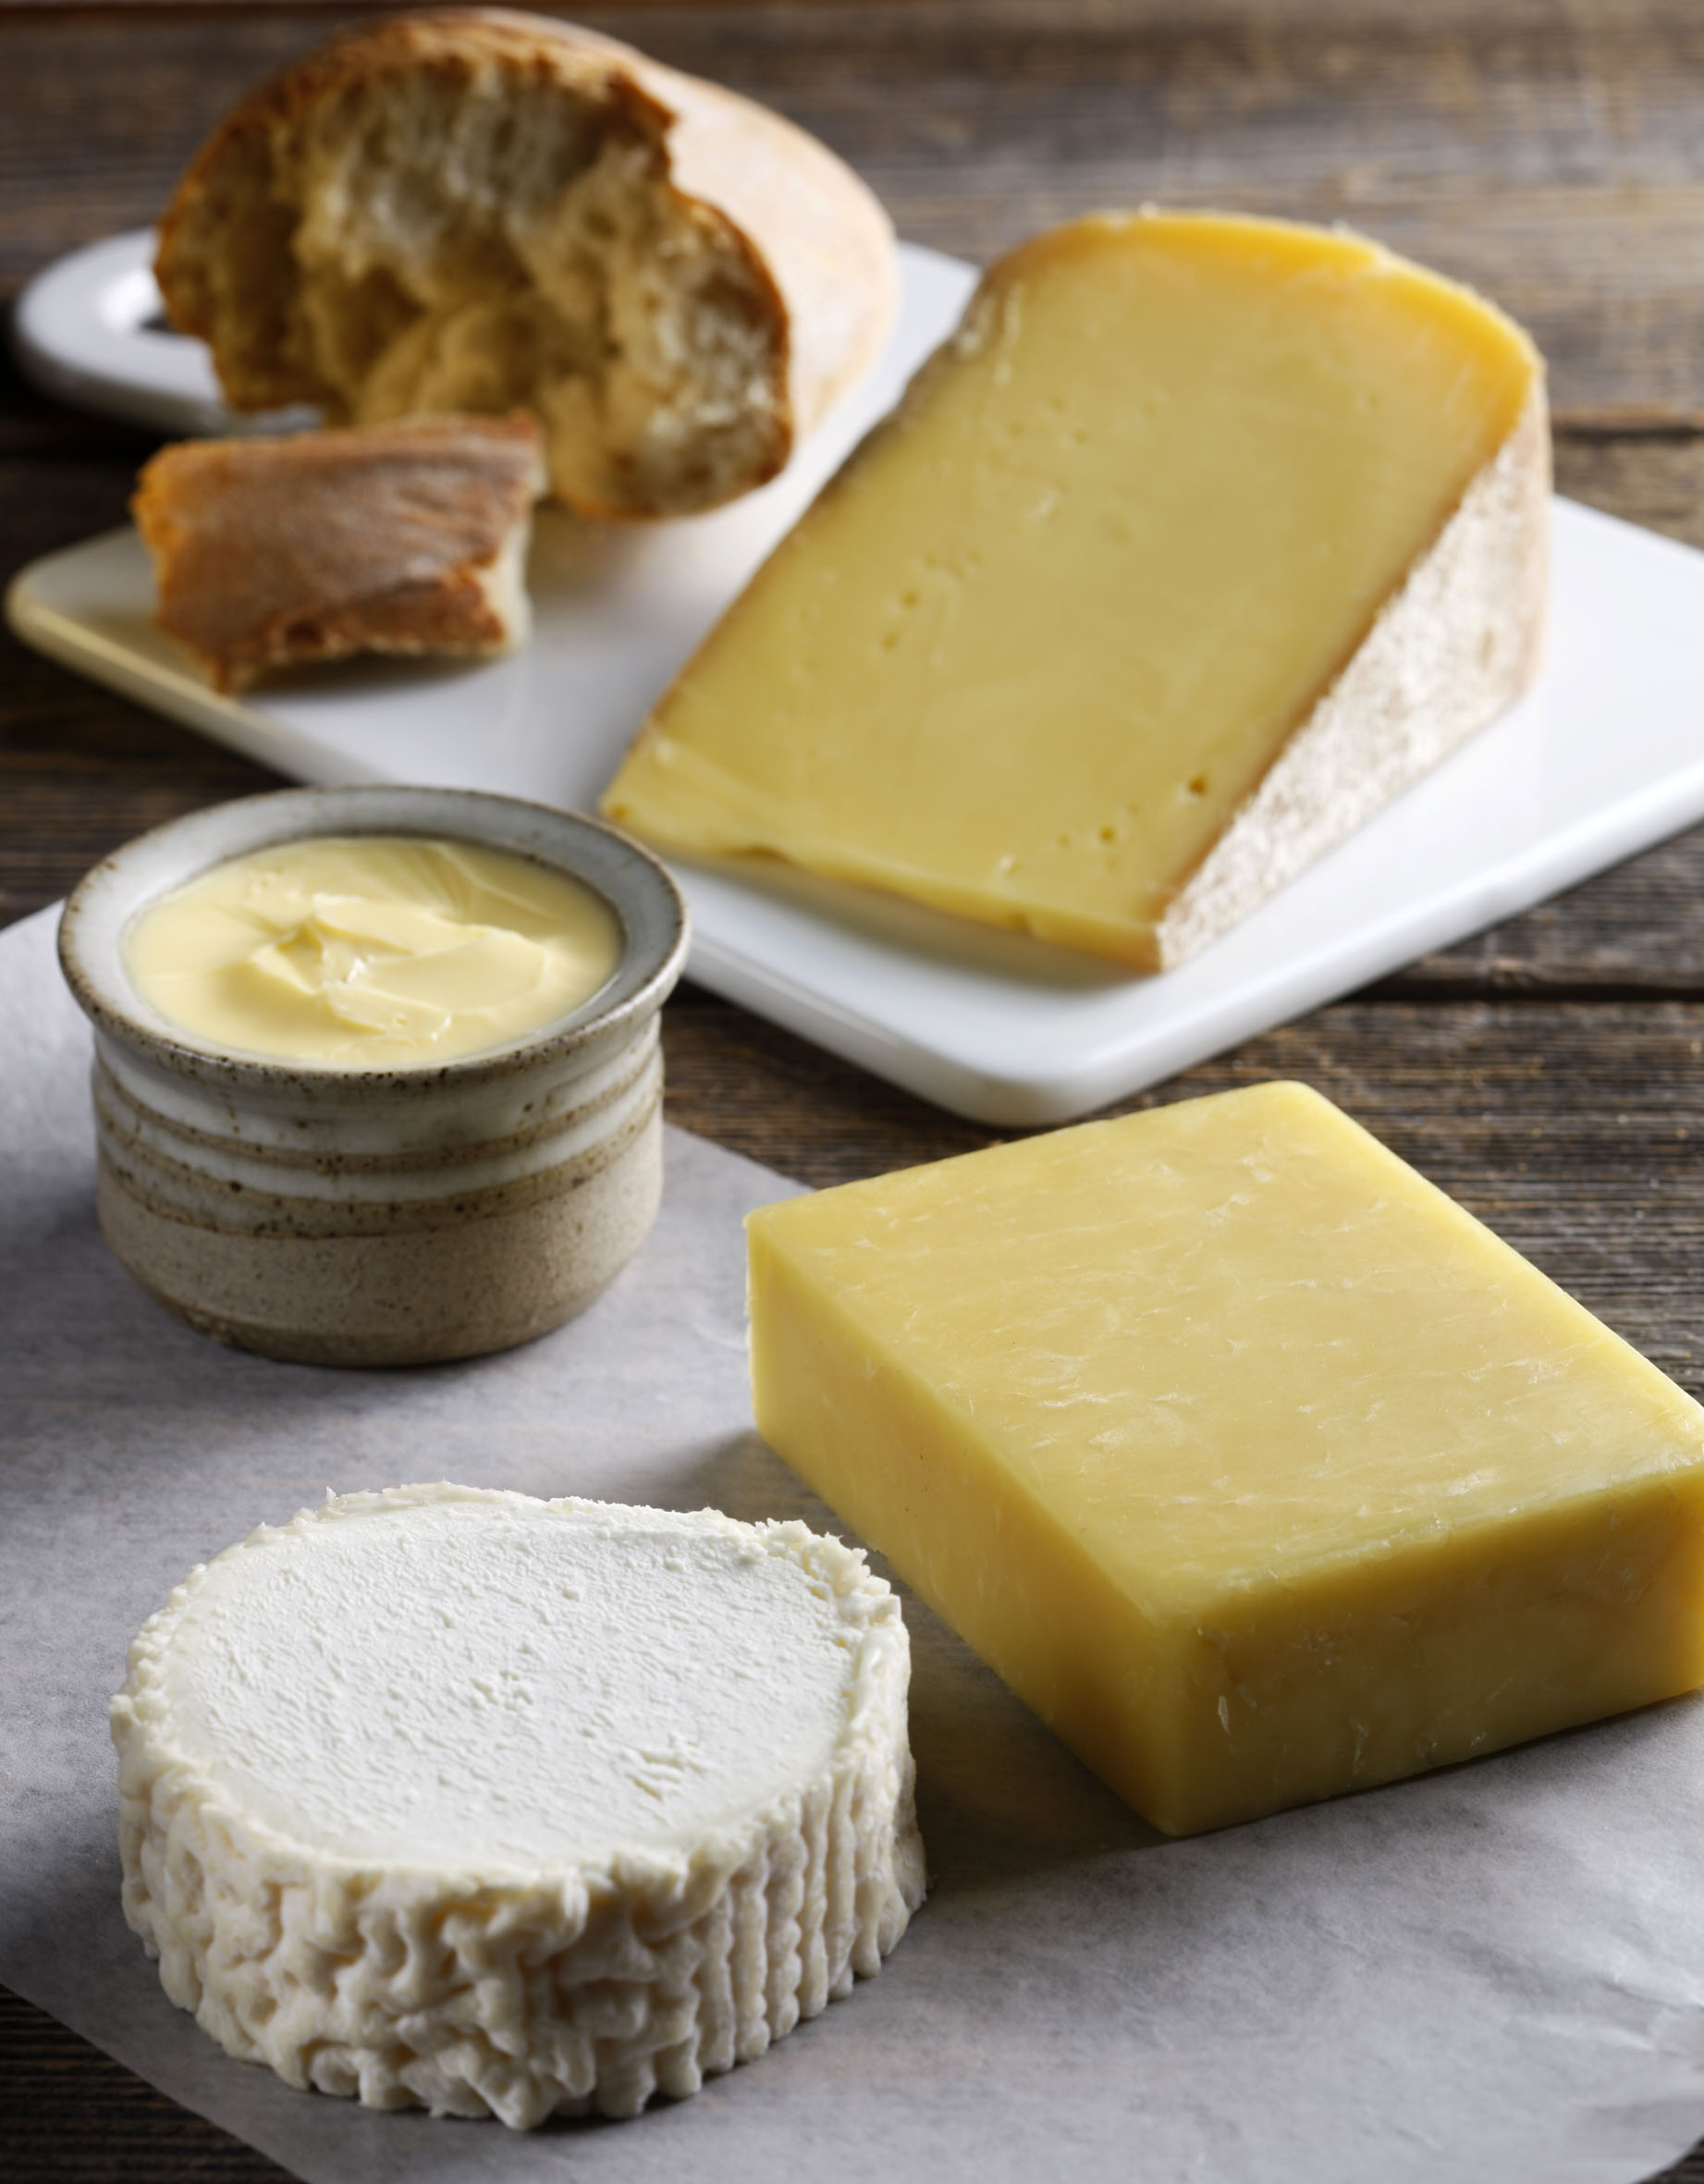 Cheesy open days to take place in Cork